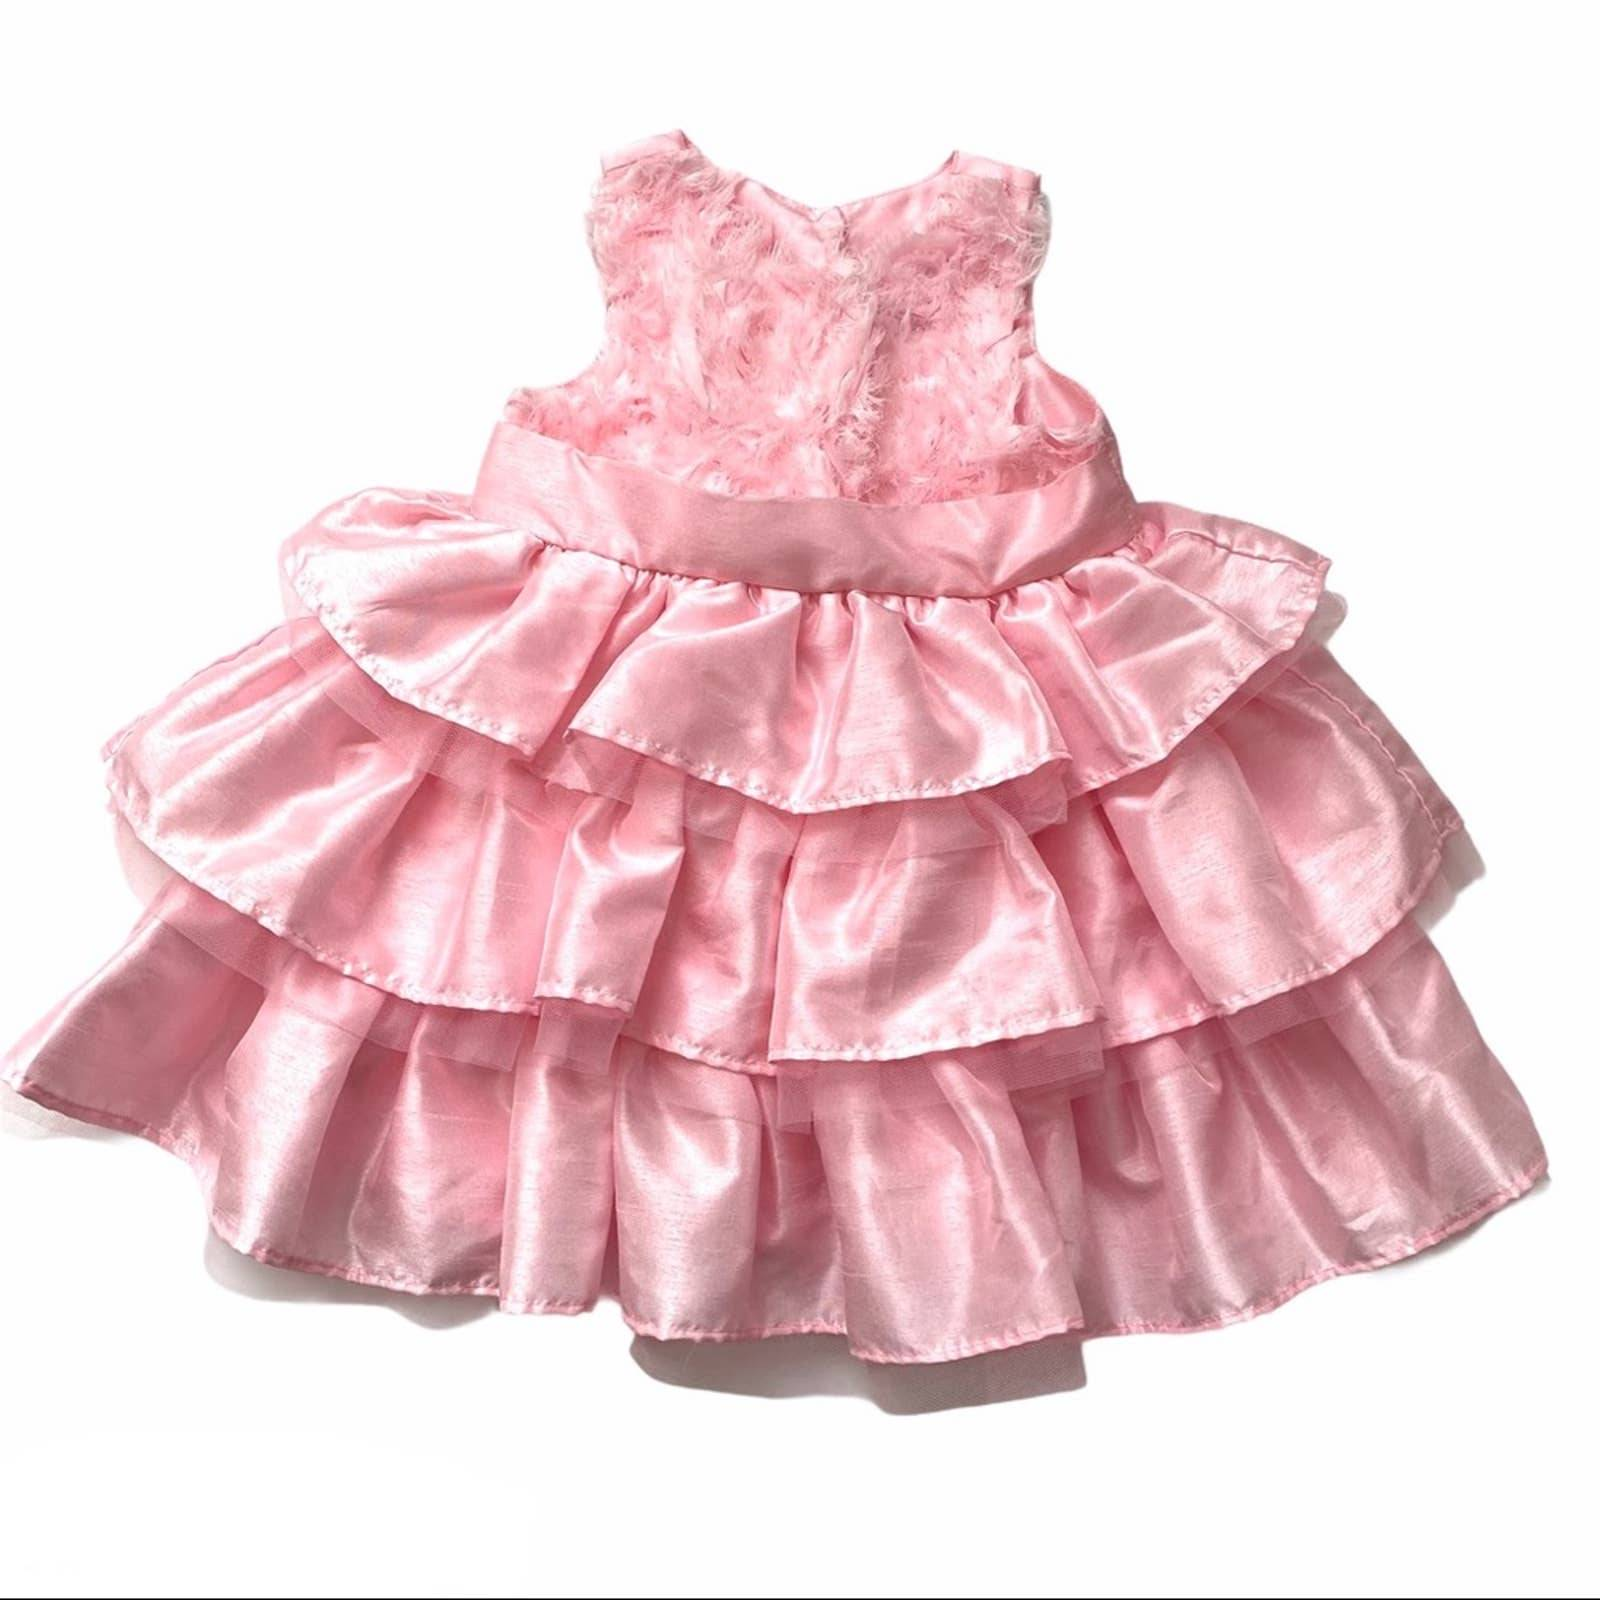 Ruffle pink MudPie Easter, Holiday dress